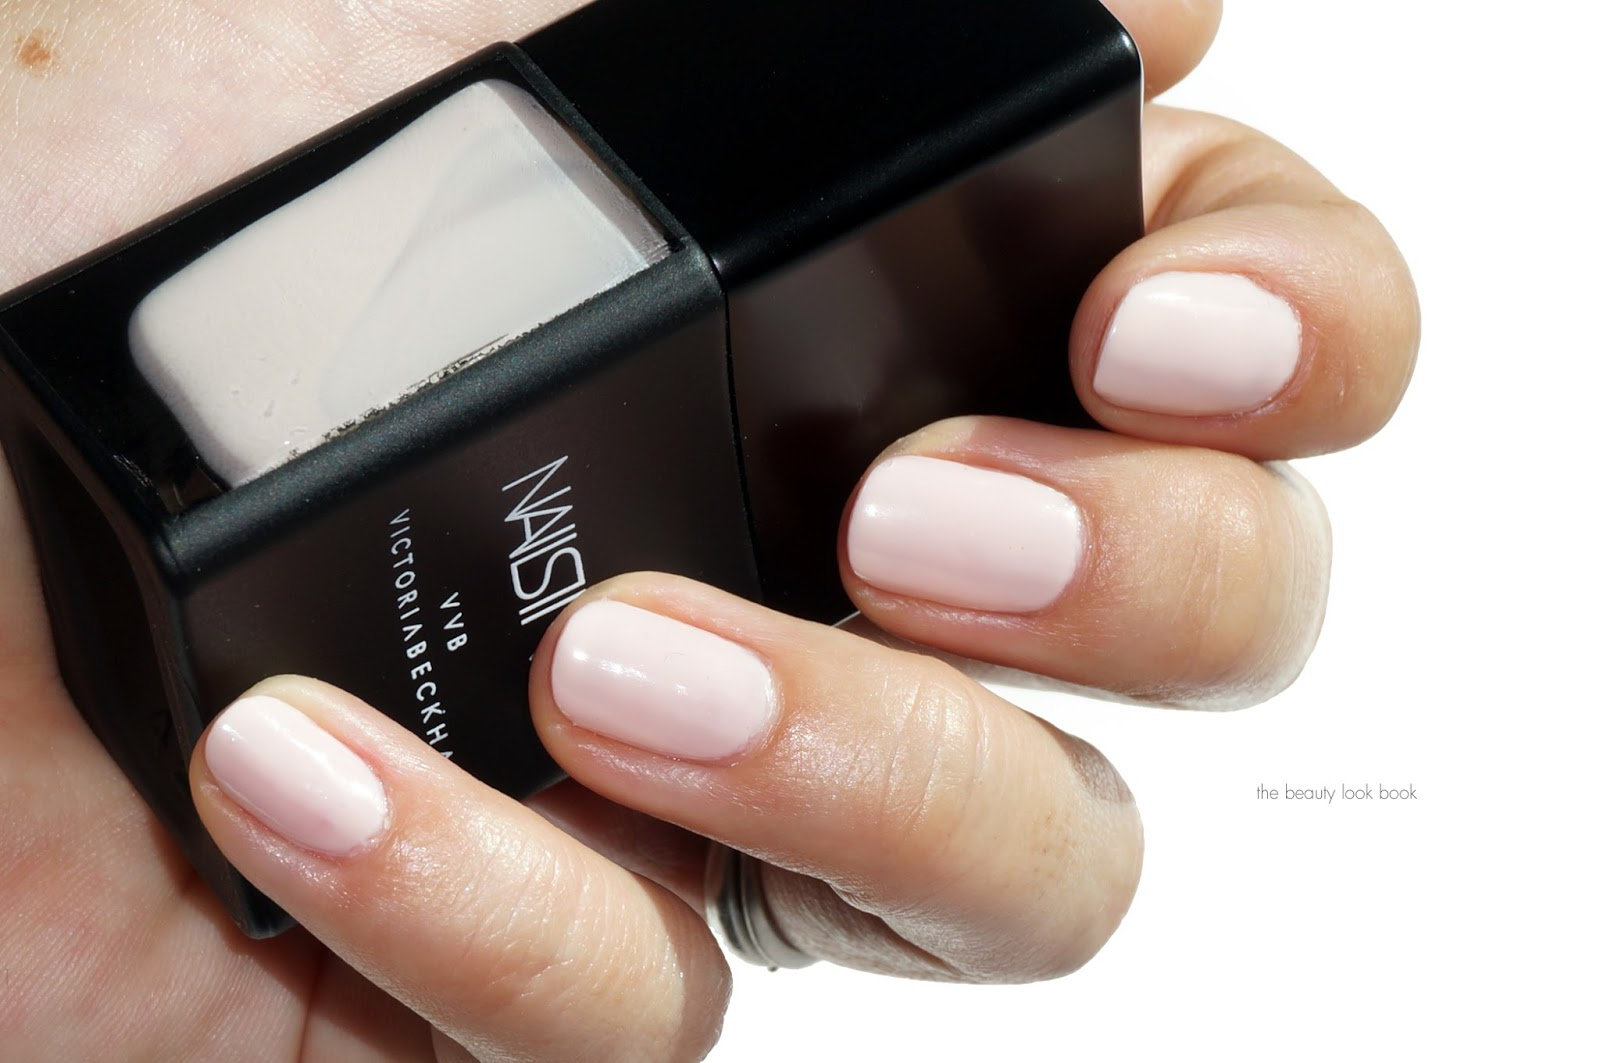 Victoria Victoria Beckham X Nails Inc Duo In Bamboo White